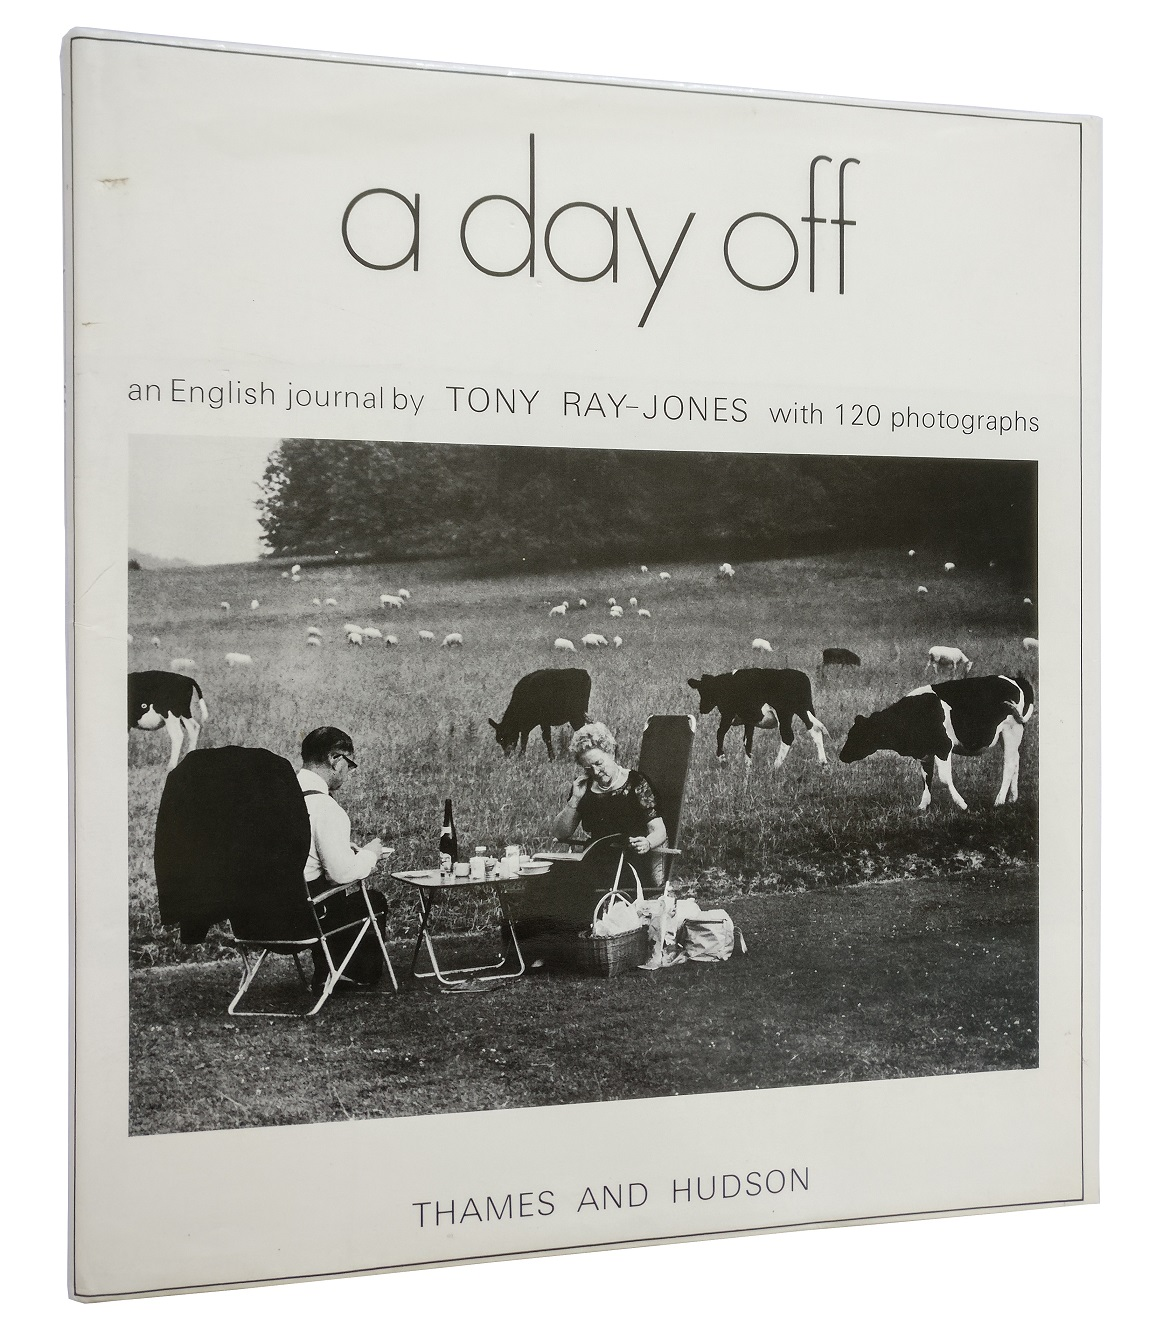 A Day Off. An English journal by Tony Ray-Jones